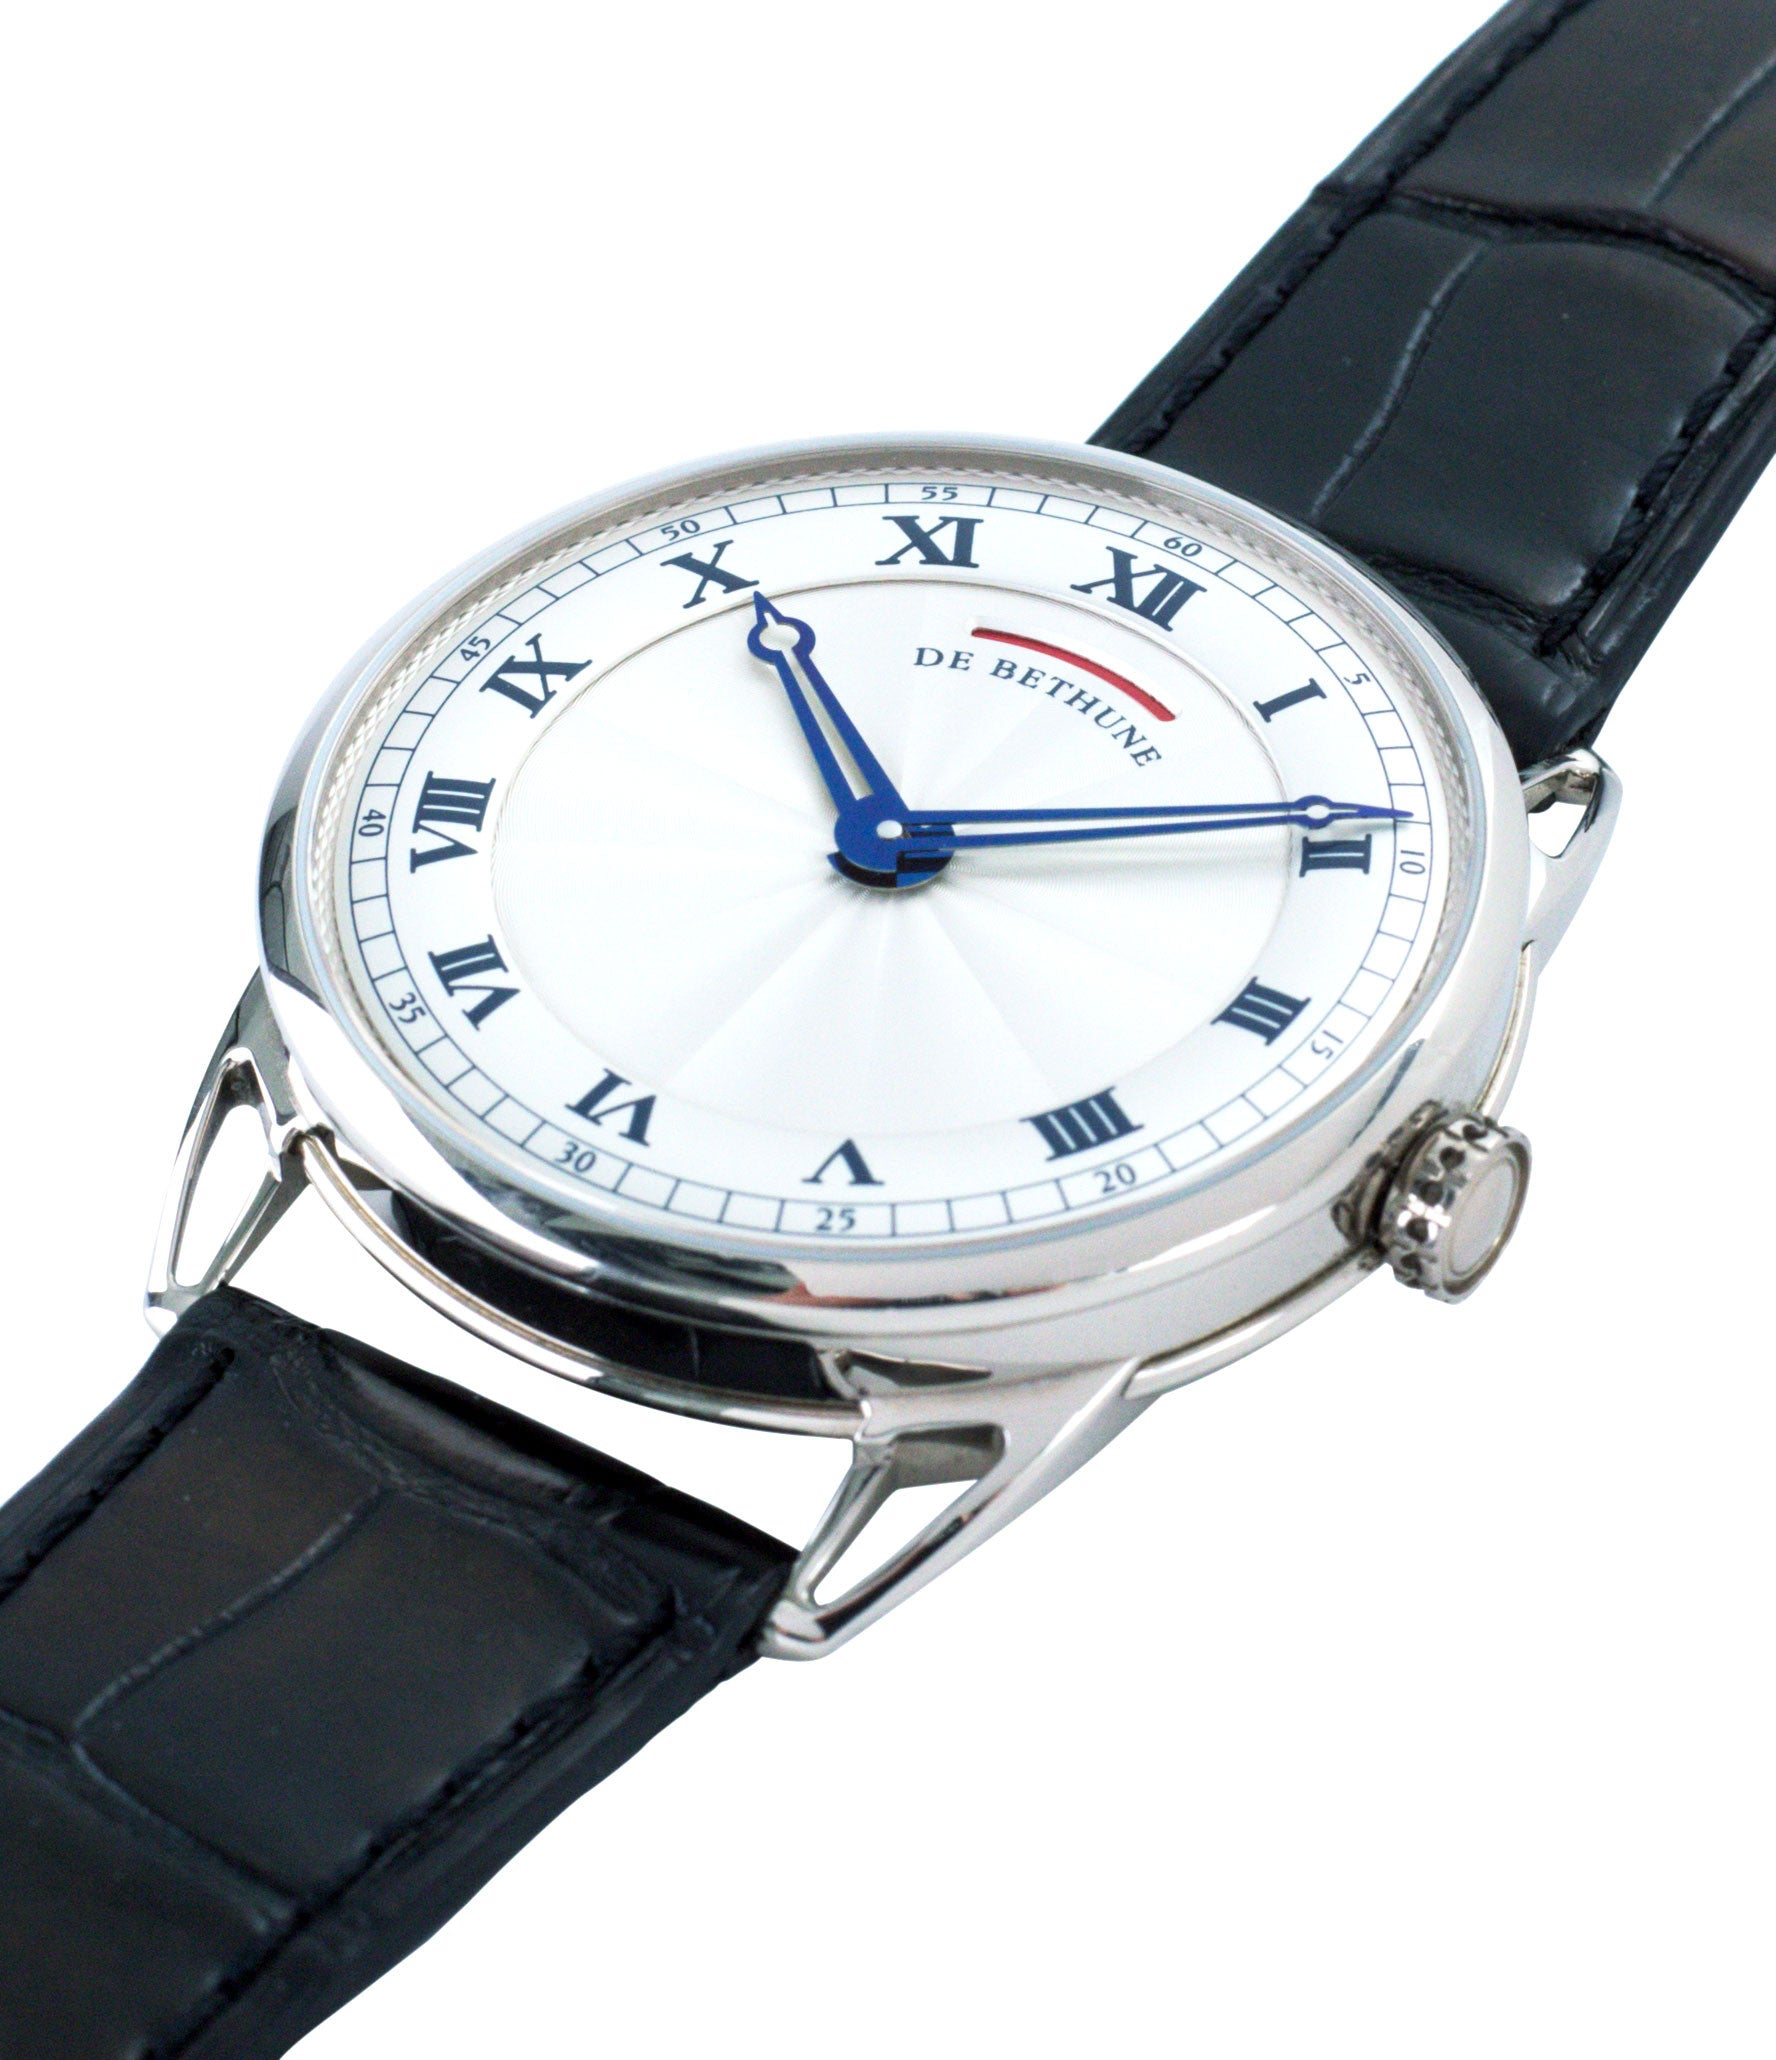 buy preowned luxury watch De Bethune DB25 white gold gentlemen's wristwatch for sale online at A Collected Man London approved reseller of independent watchmakers